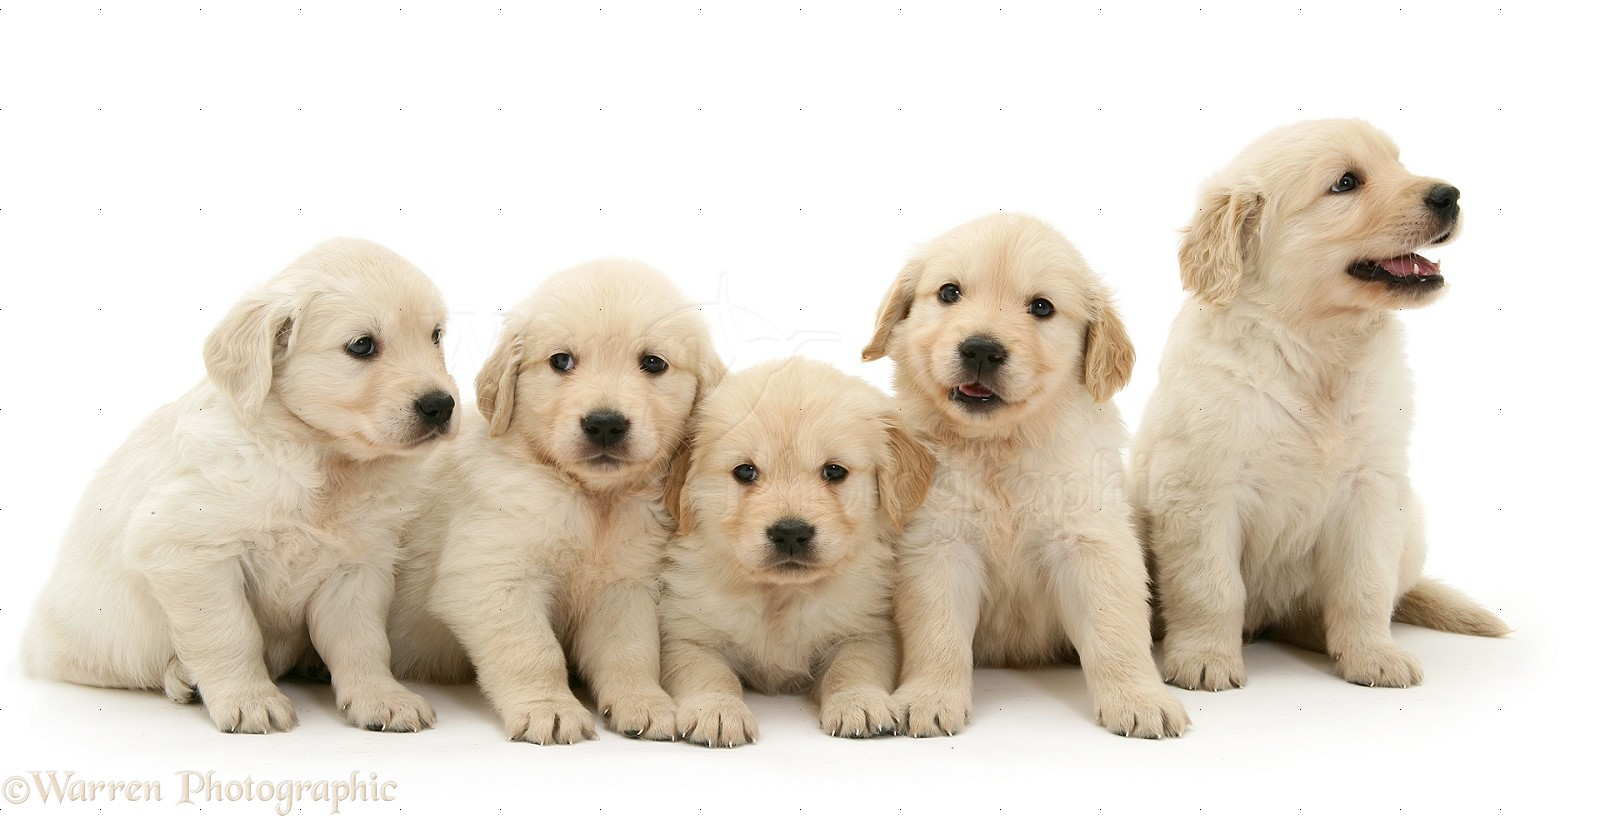 Wp14072 five golden retriever puppies in a row